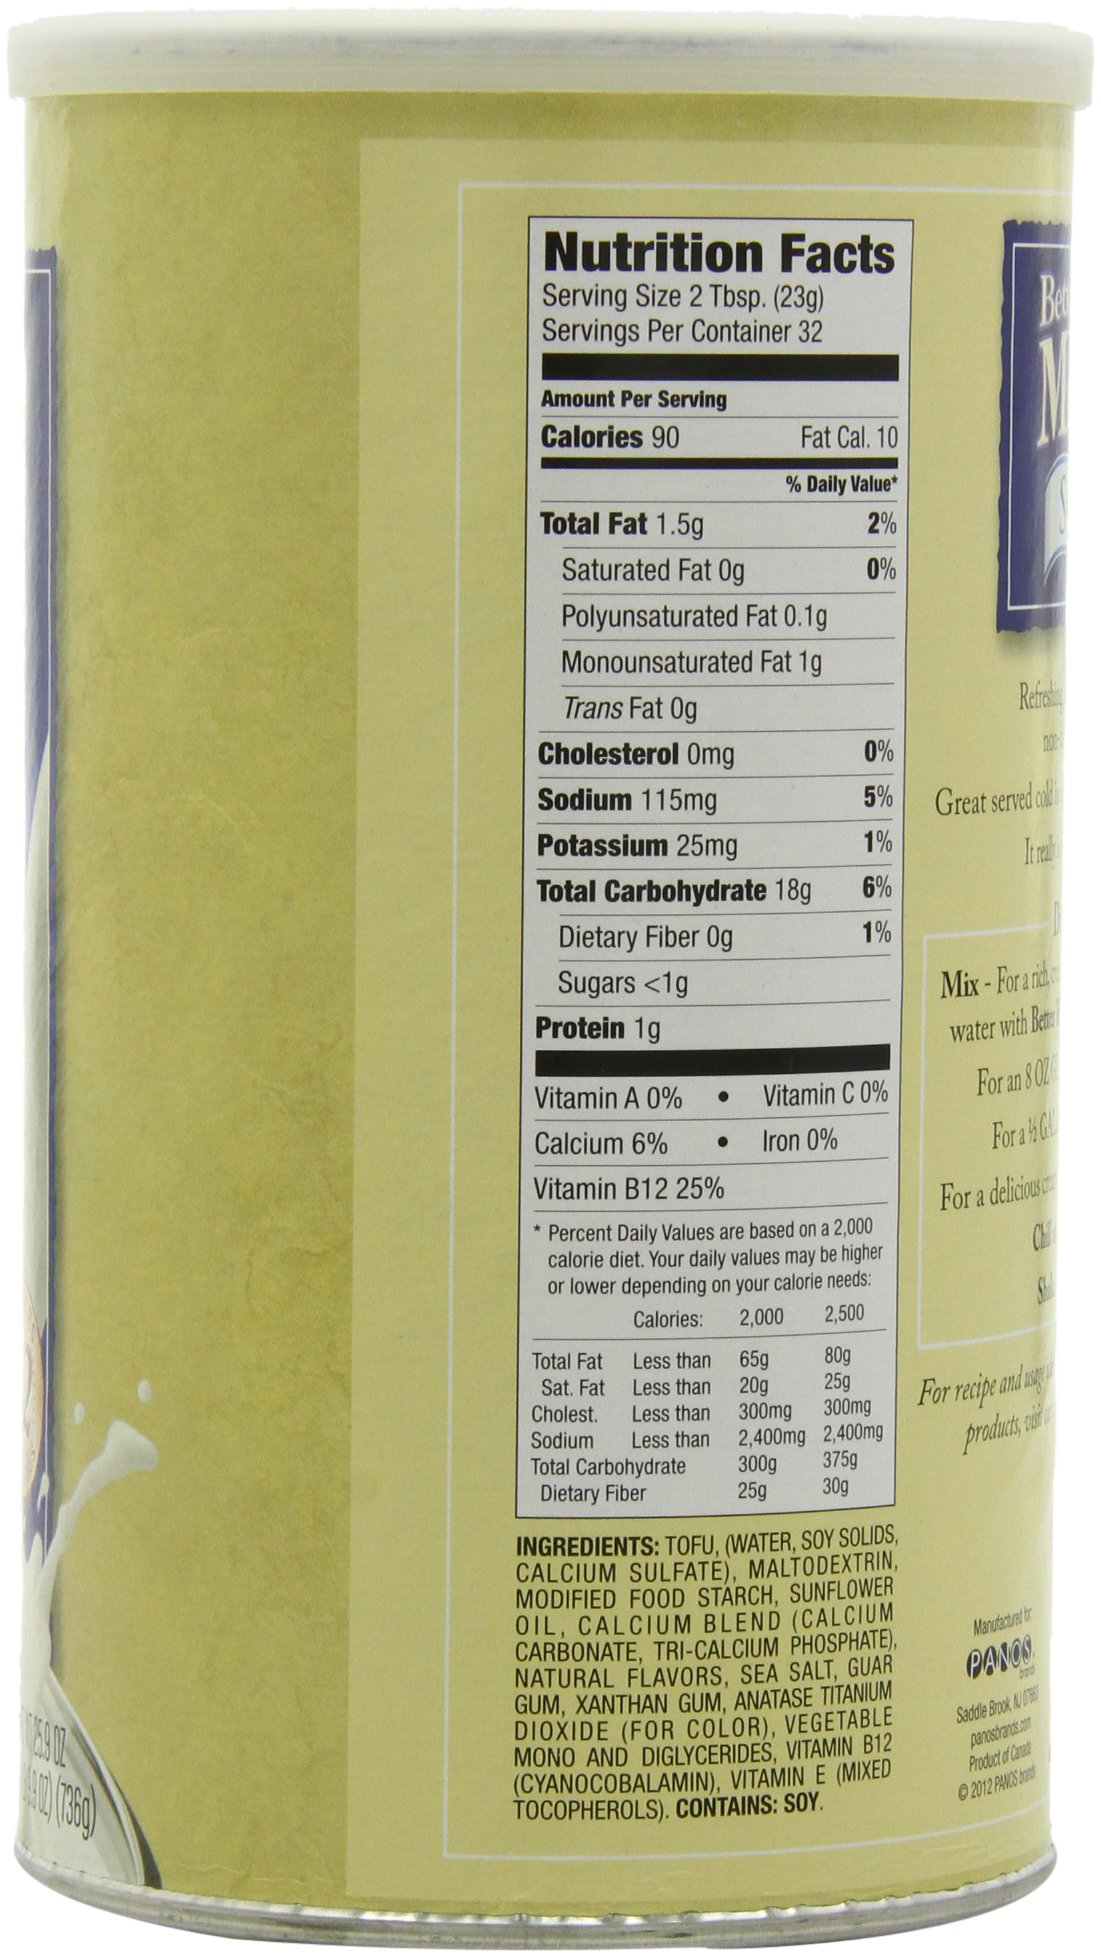 Better Than Milk Vegan Soy Powder, 25.9-Ounce Canisters (Pack of 2) by Better Than Milk (Image #4)